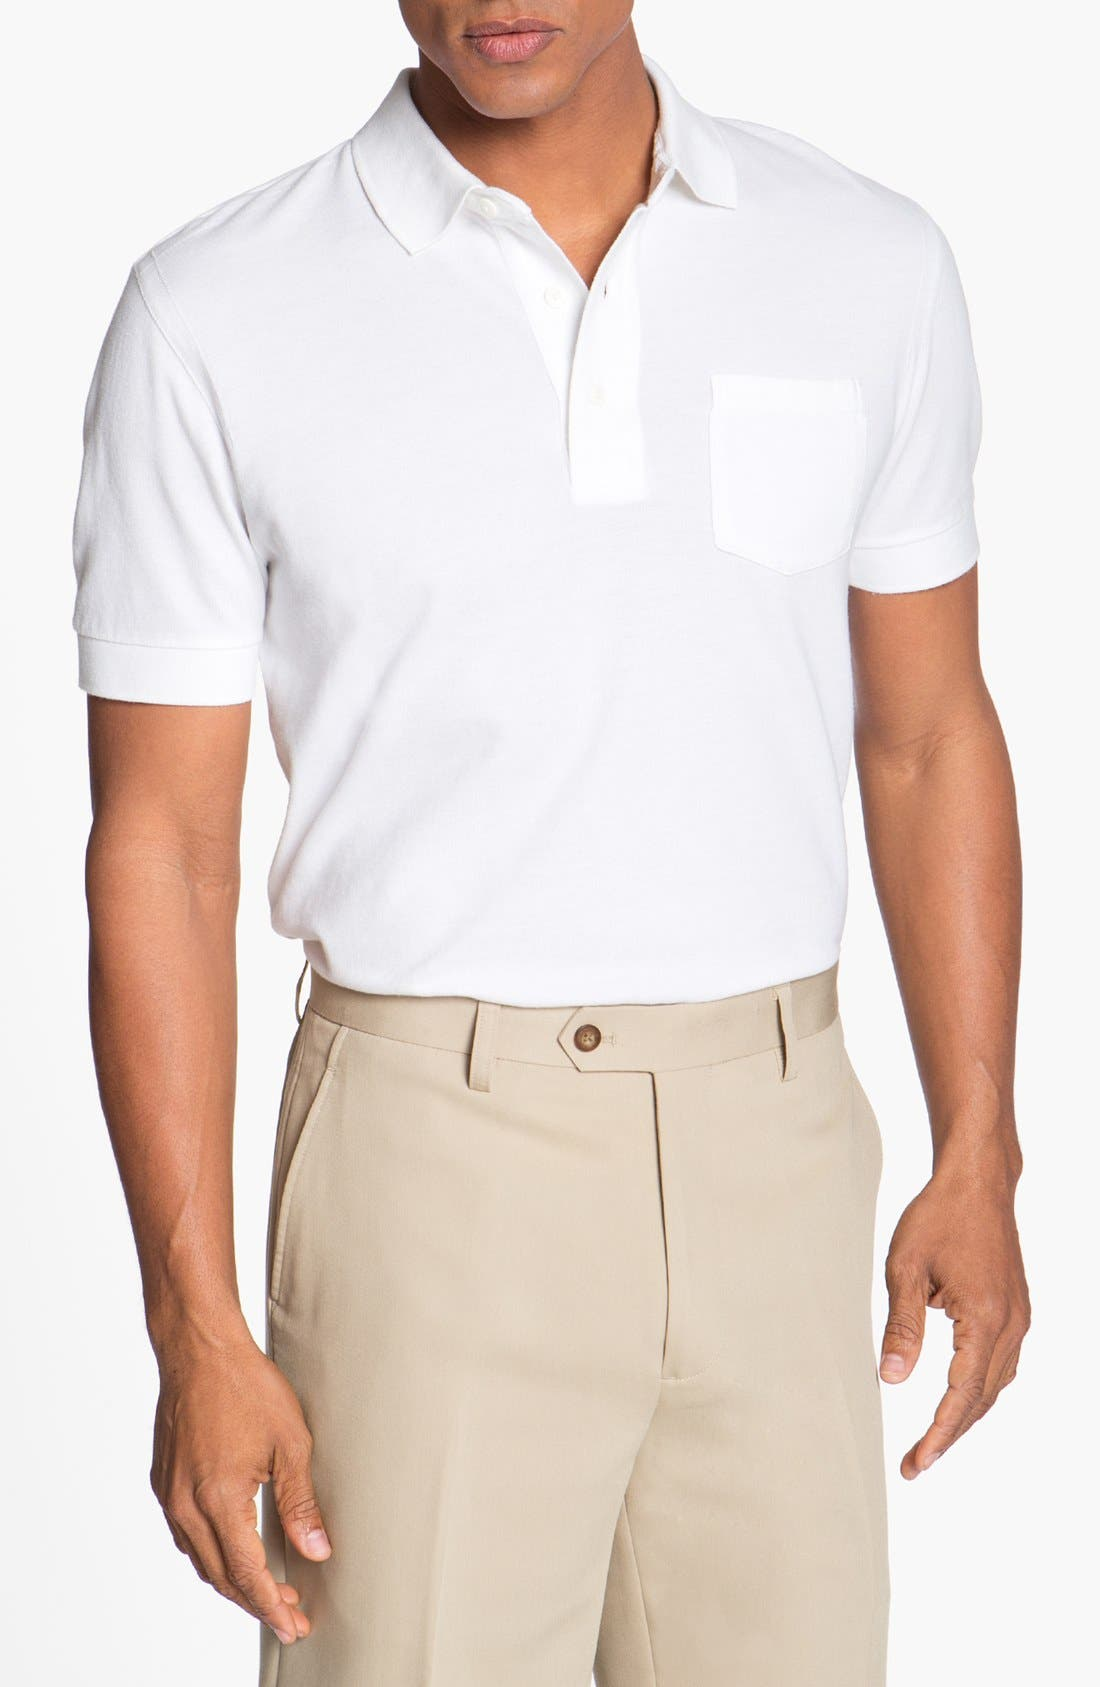 Main Image - Cutter & Buck 'Market' Polo (Big & Tall) (Online Only)